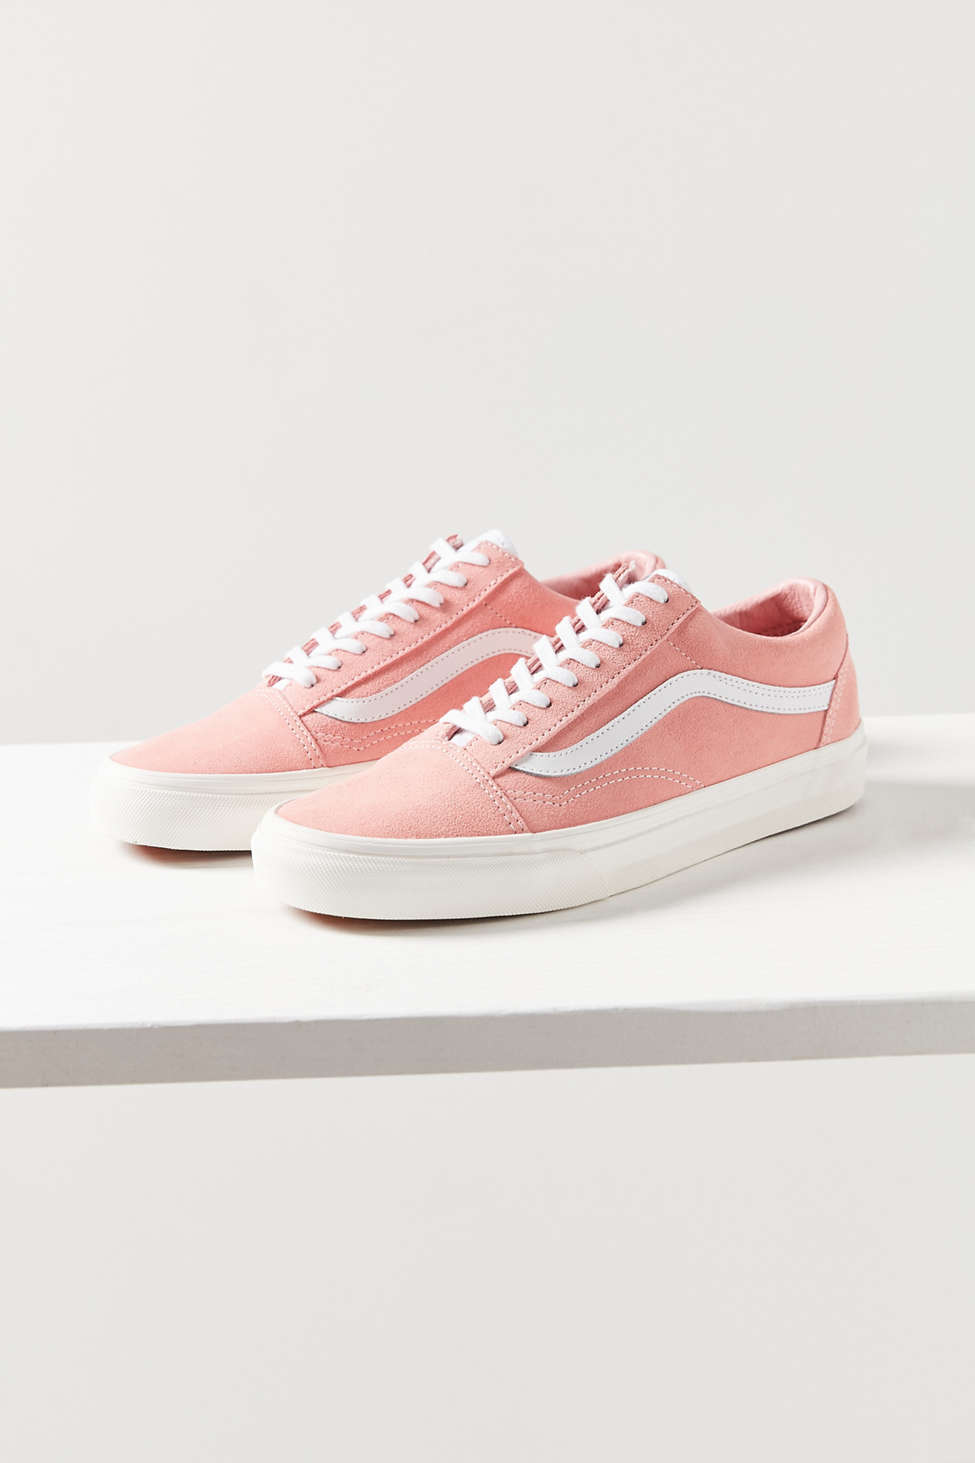 Slide View: 2: Vans Retro Sport Old Skool